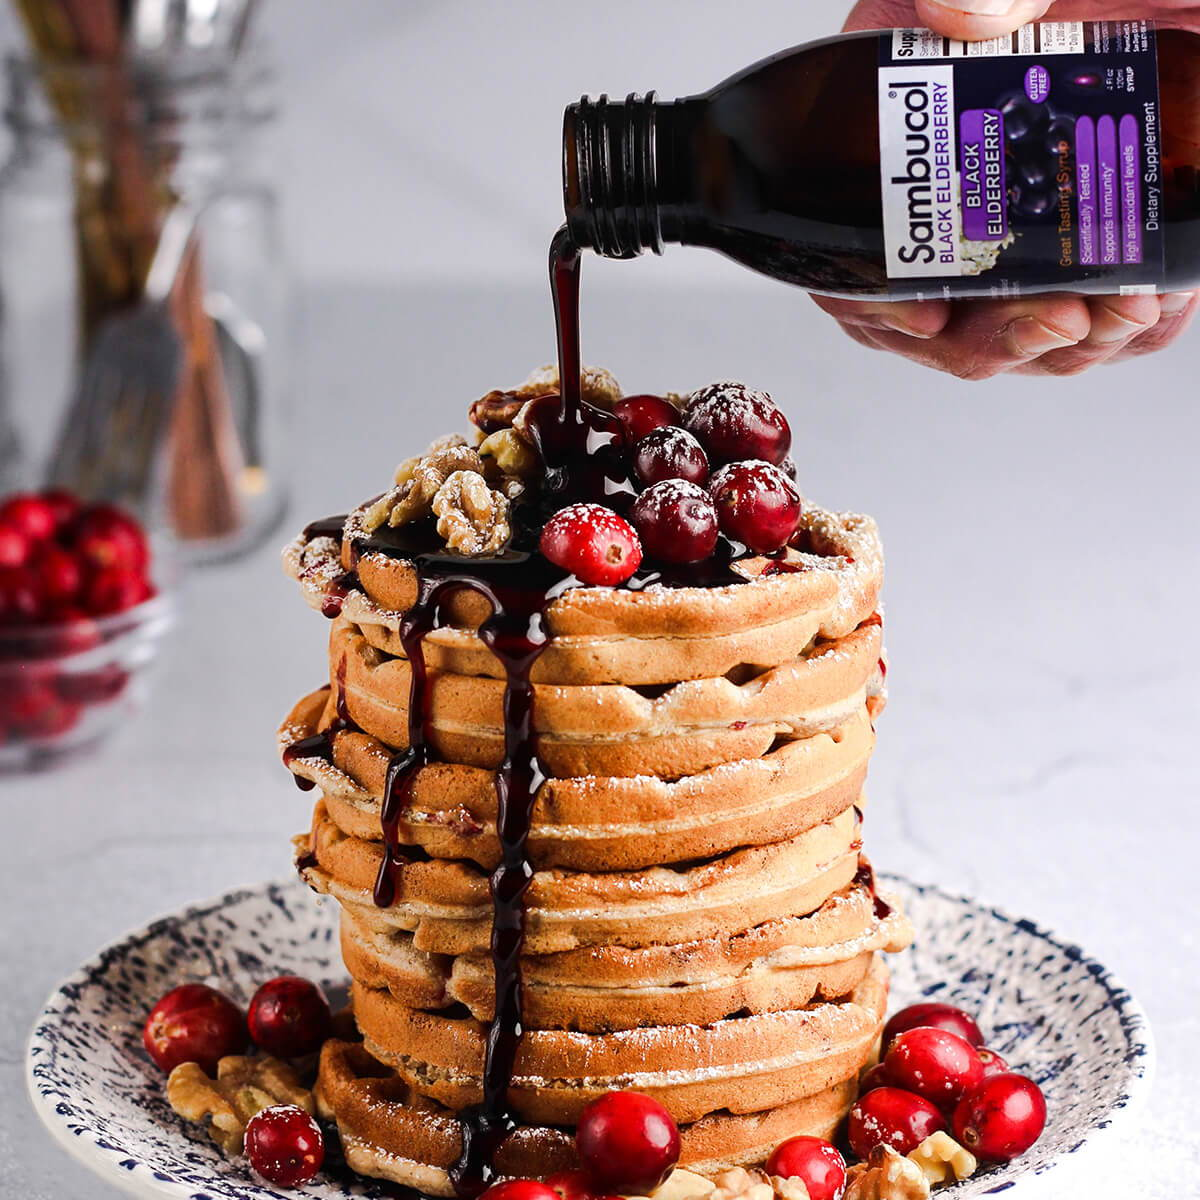 Sambucol Black Elderberry syrup drizzled over waffles